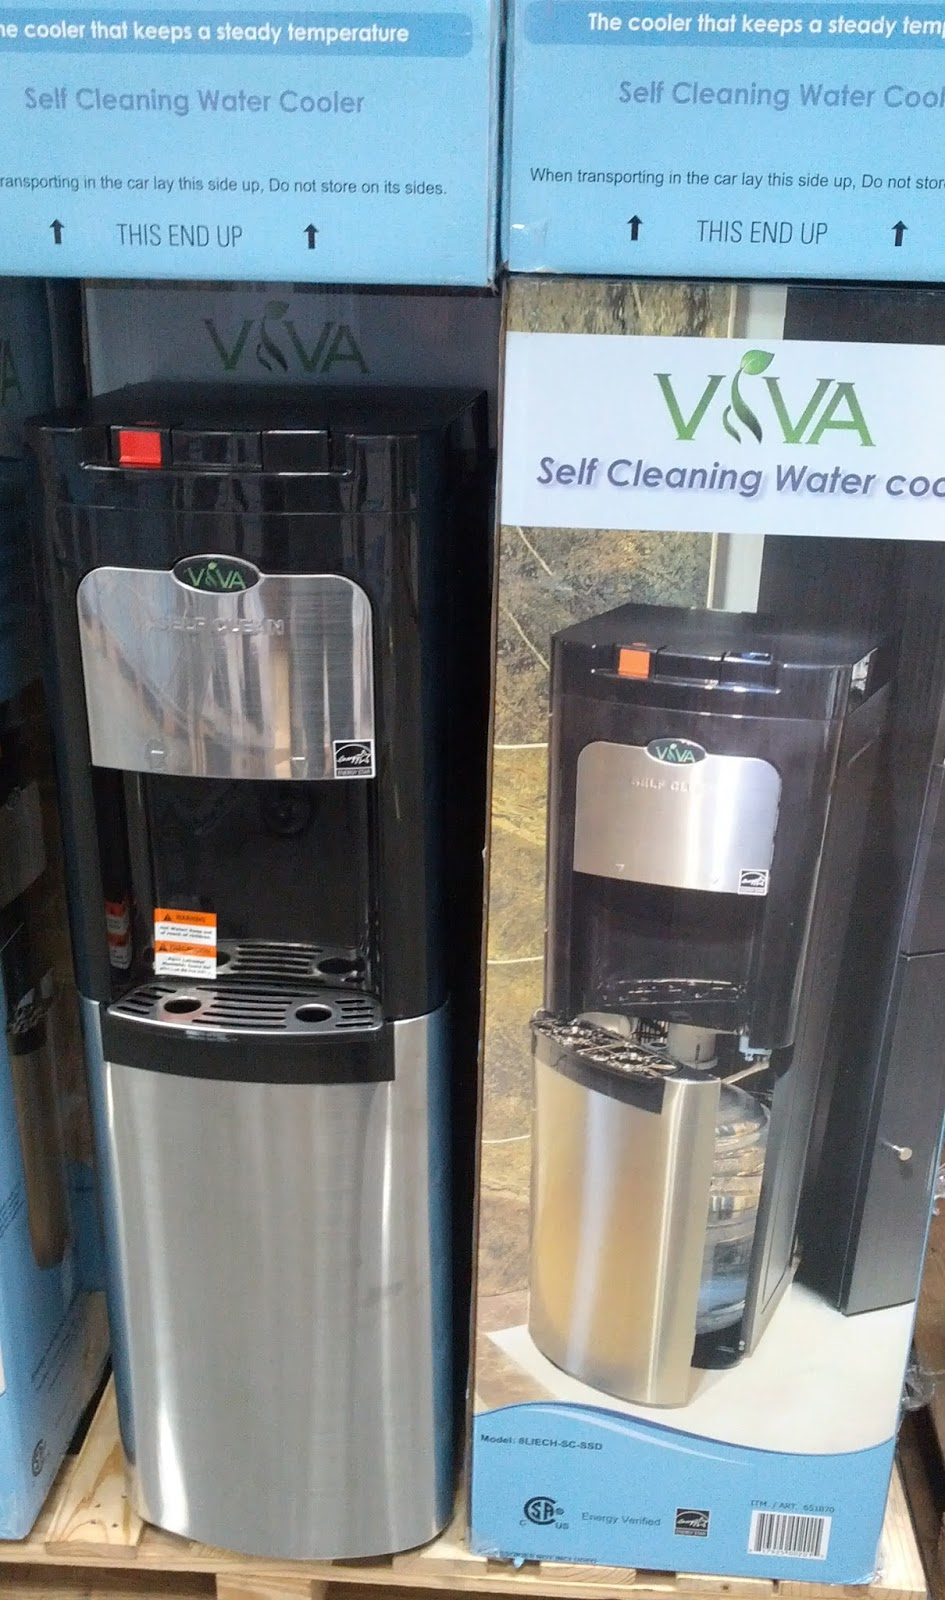 Dispense Fresh Clean Water From The Viva Self Cleaning Cooler